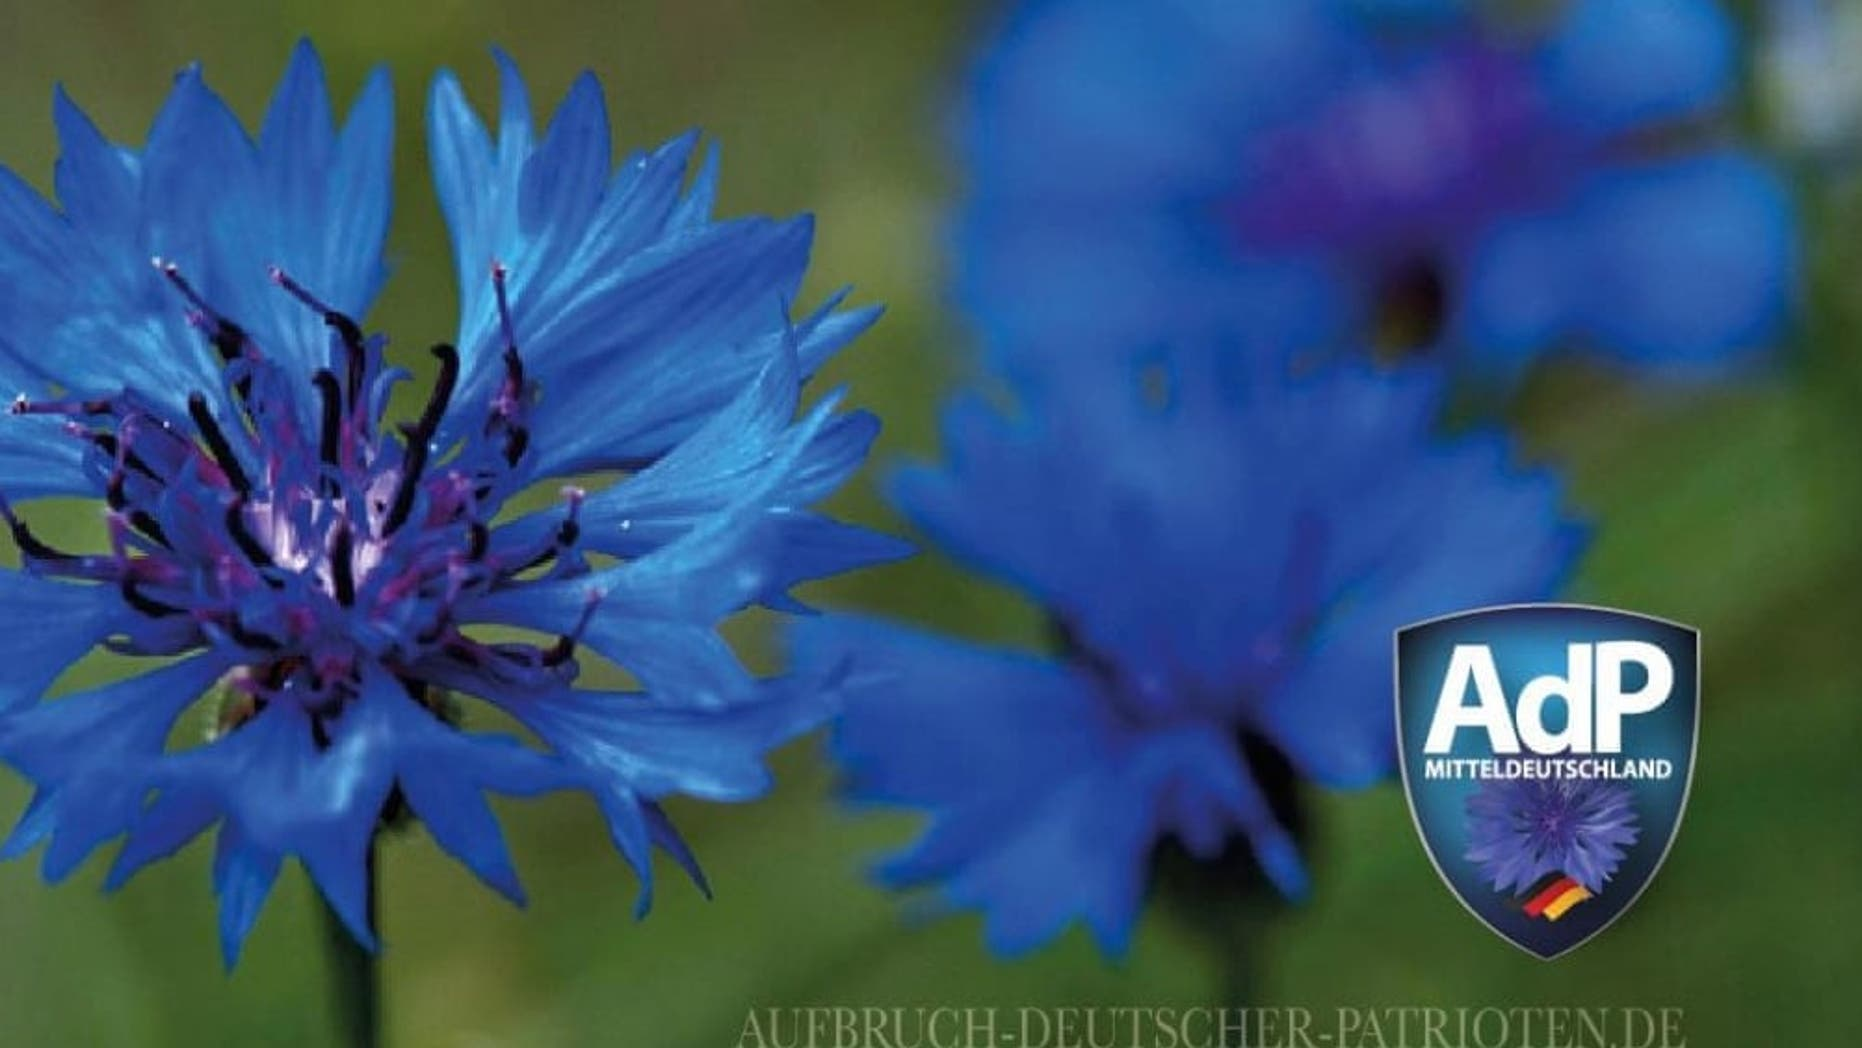 The logo of the party features a blue corn flower that has been associated in neighboring Austria with the anti-Semitic Schoenerer Movement and was used as a secret symbol by Nazi sympathizers up until the country was annexed by the Nazi Germany in 1938.